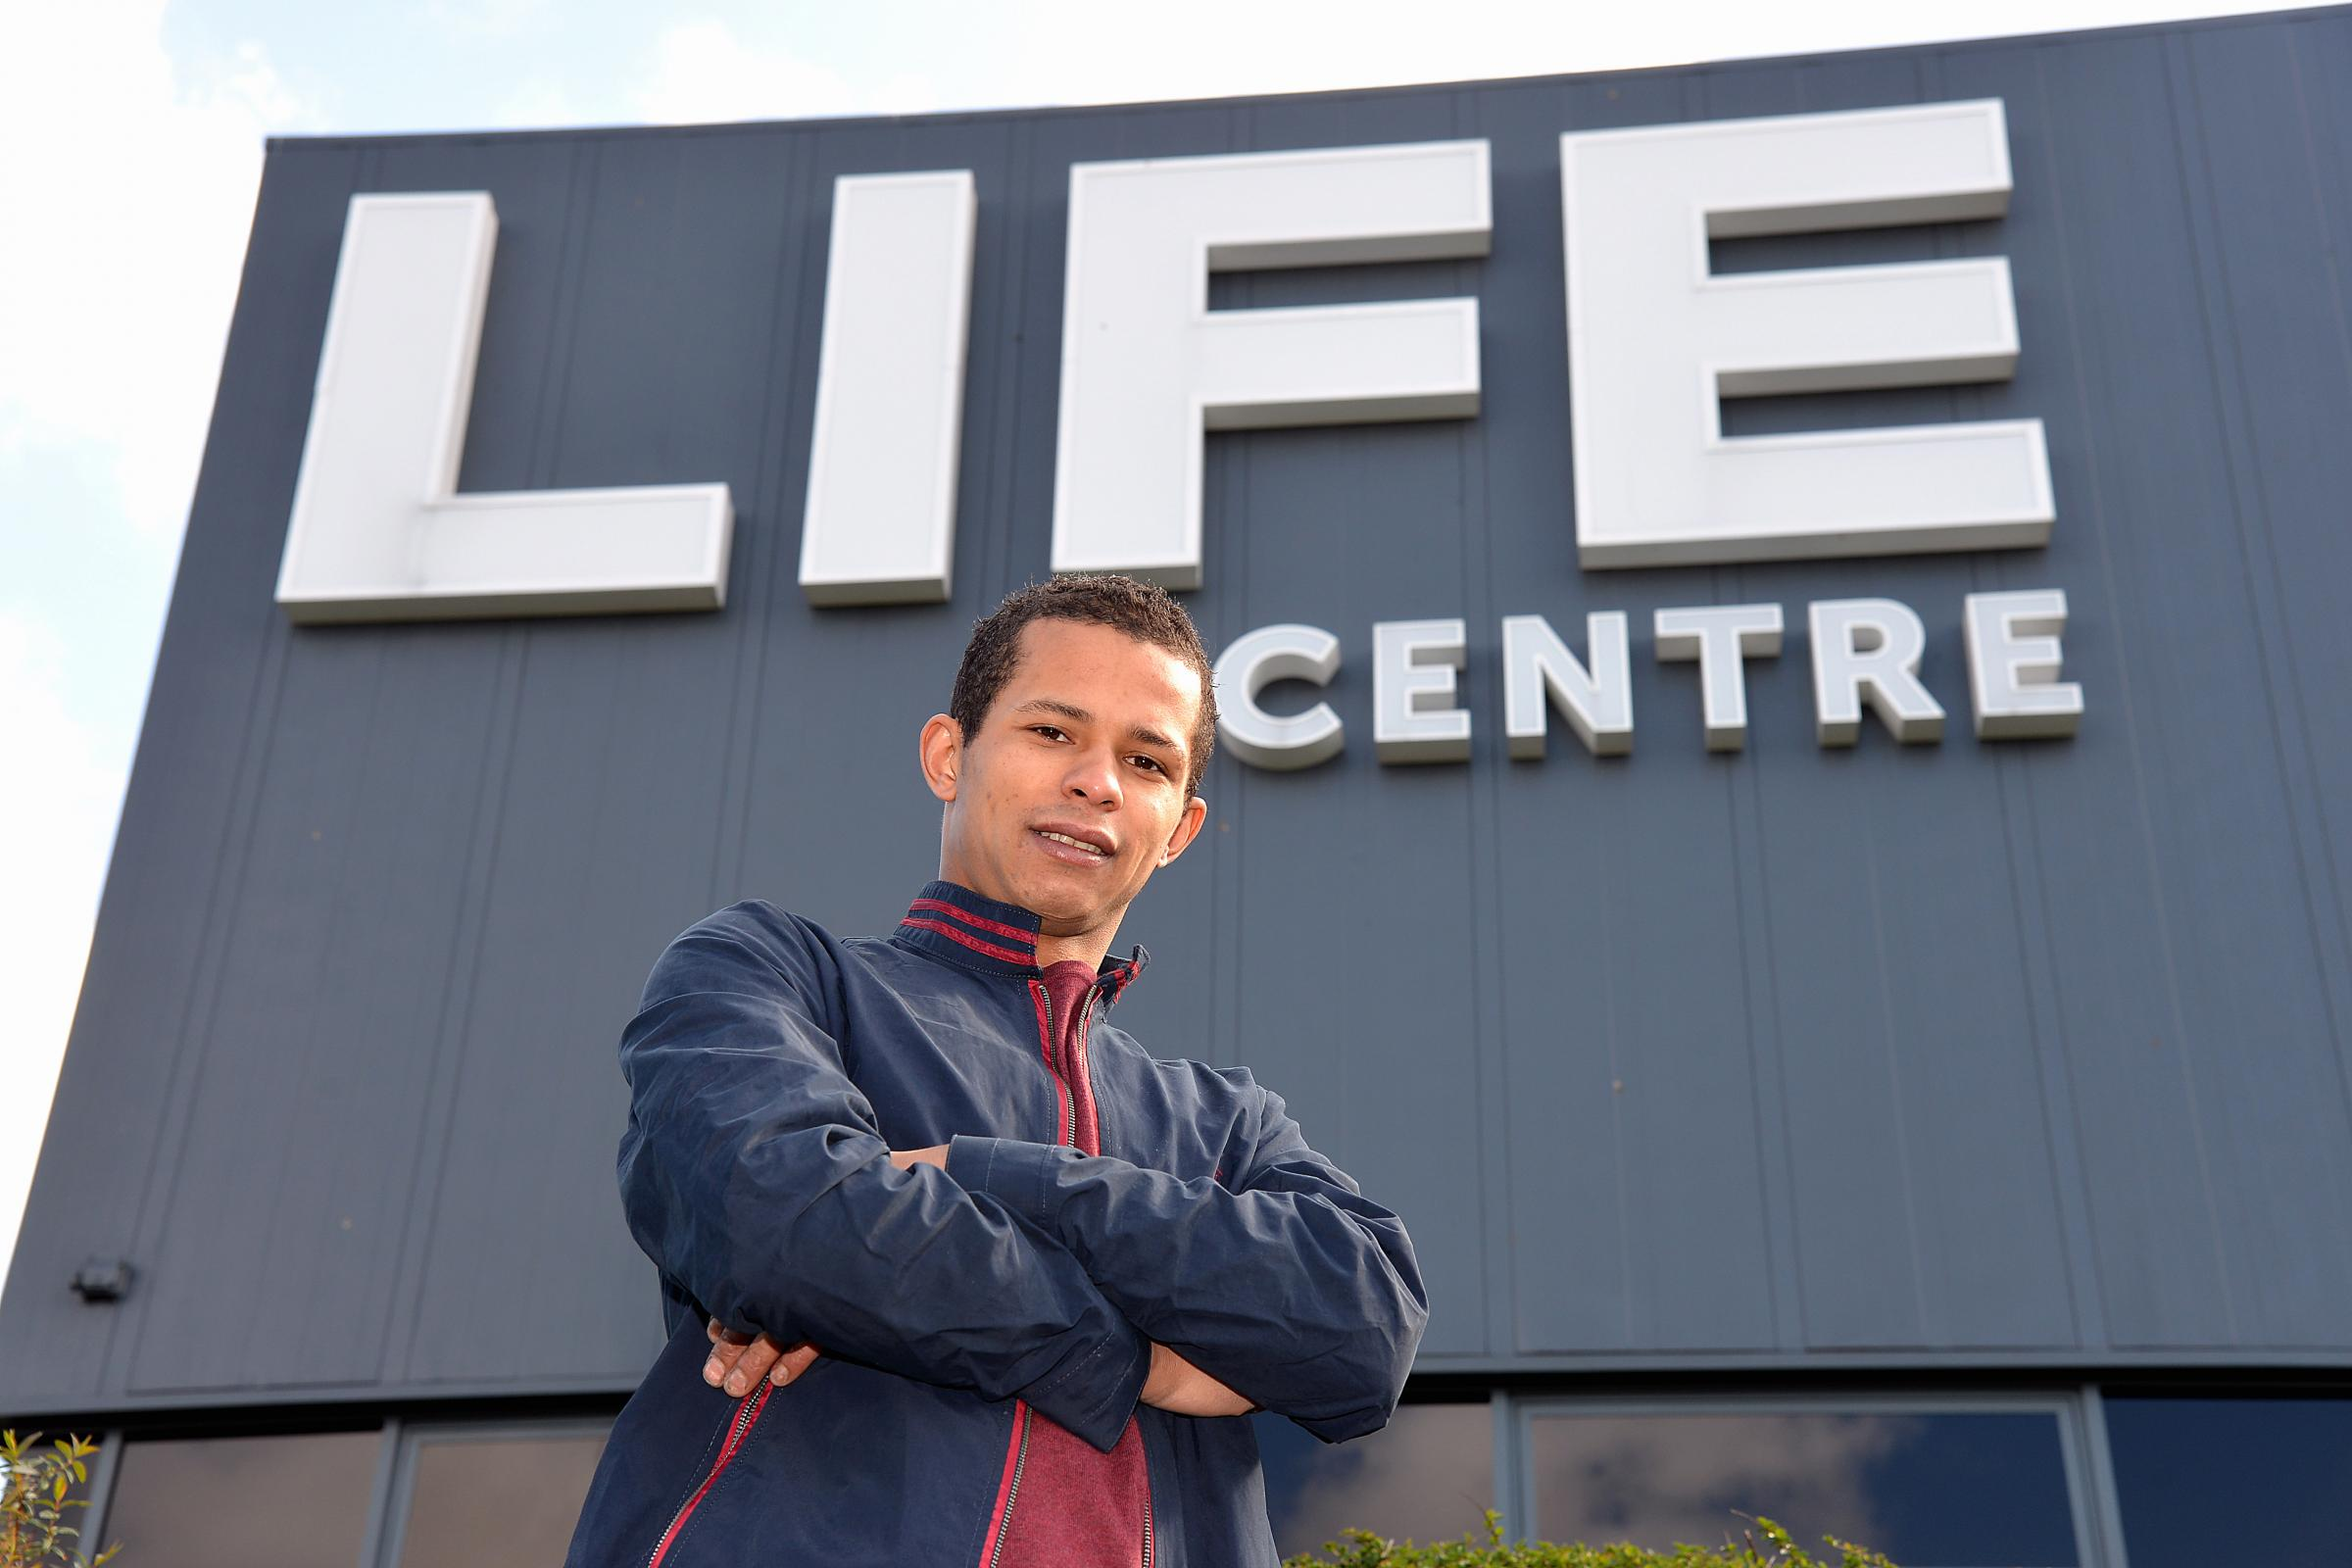 Former drug addict Christian Watson at the Life Centre, Bradford, where he found help to leave drugs behind